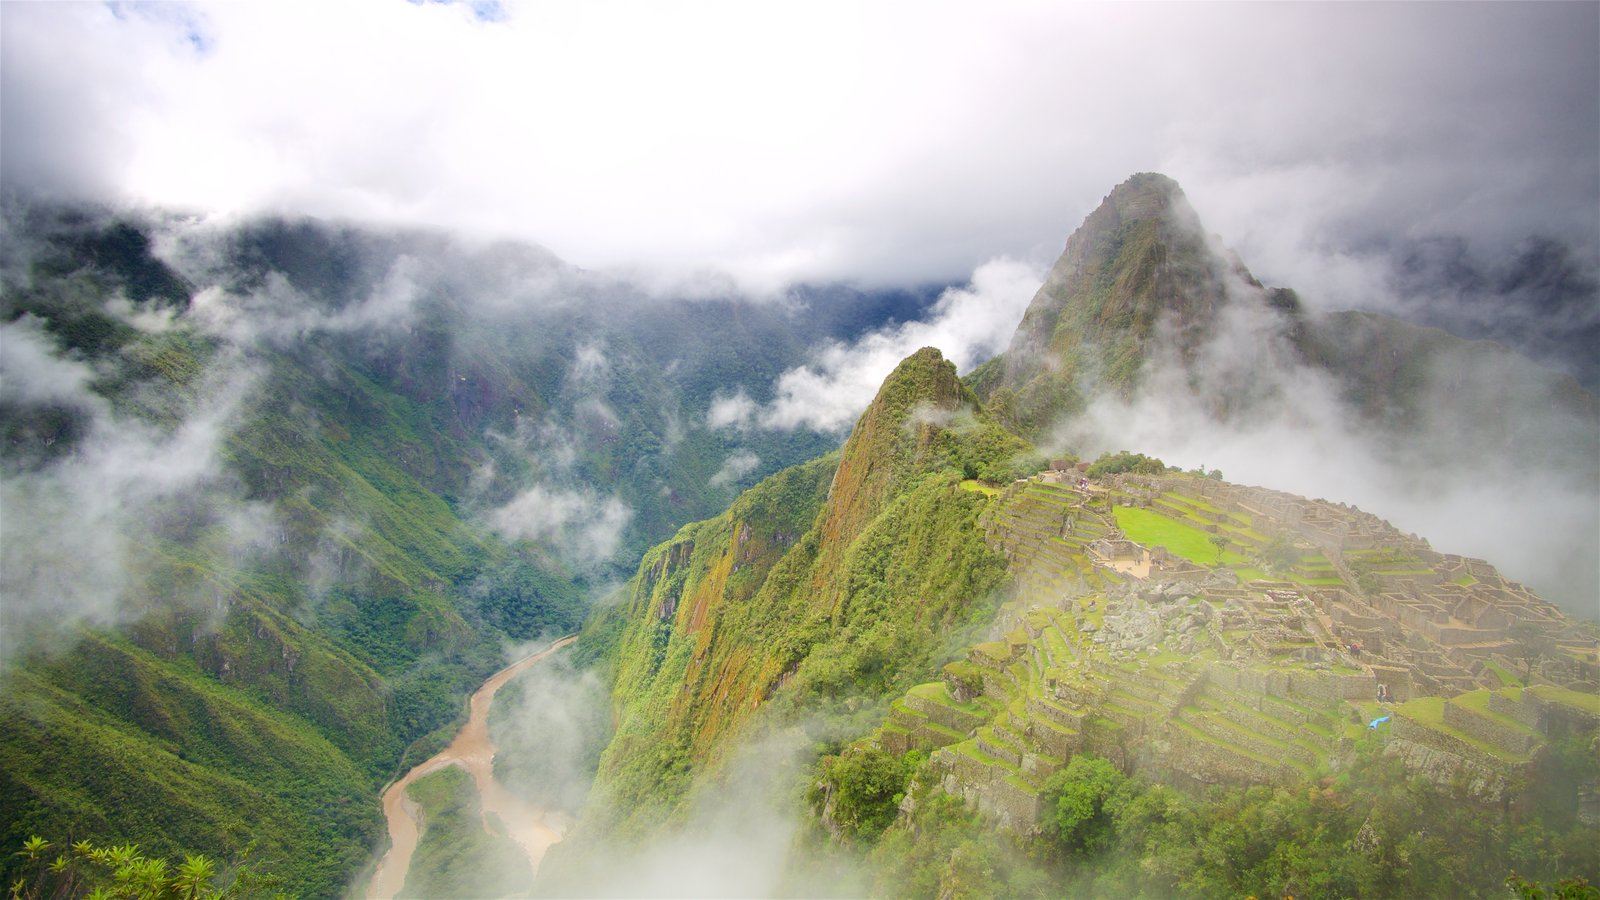 Huayna Picchu which includes mist or fog, tranquil scenes and mountains